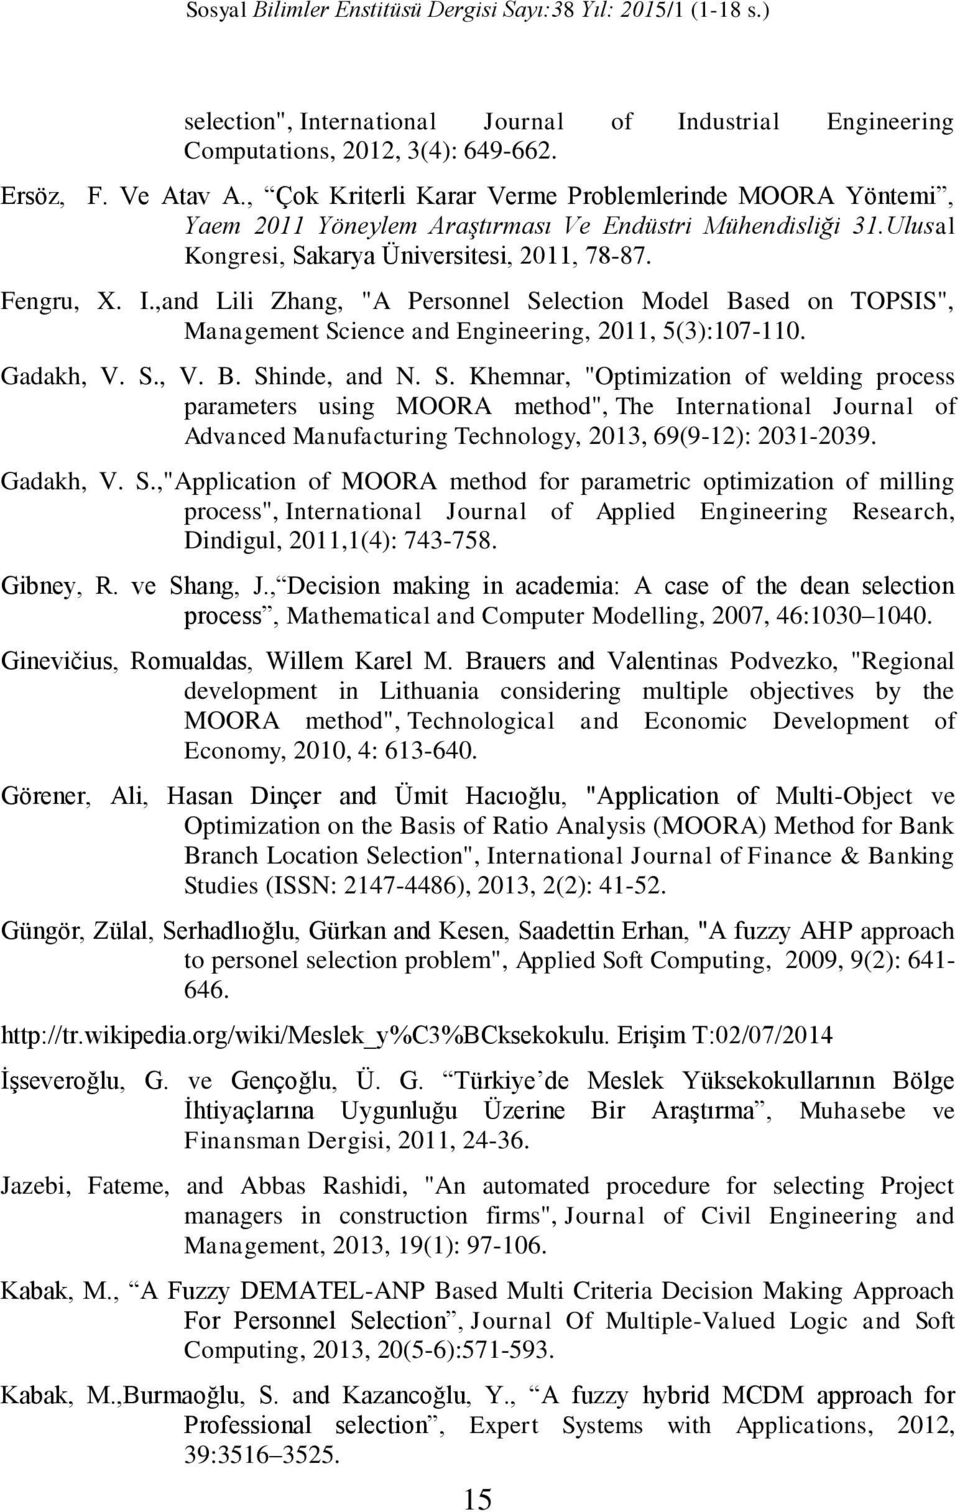 ",and Lili Zhang, ""A Personnel Selection Model Based on TOPSIS"", Management Science and Engineering, 2011, 5(3):107-110. Gadakh, V. S., V. B. Shinde, and N. S. Khemnar, ""Optimization of welding process parameters using MOORA method"", The International Journal of Advanced Manufacturing Technology, 2013, 69(9-12): 2031-2039."